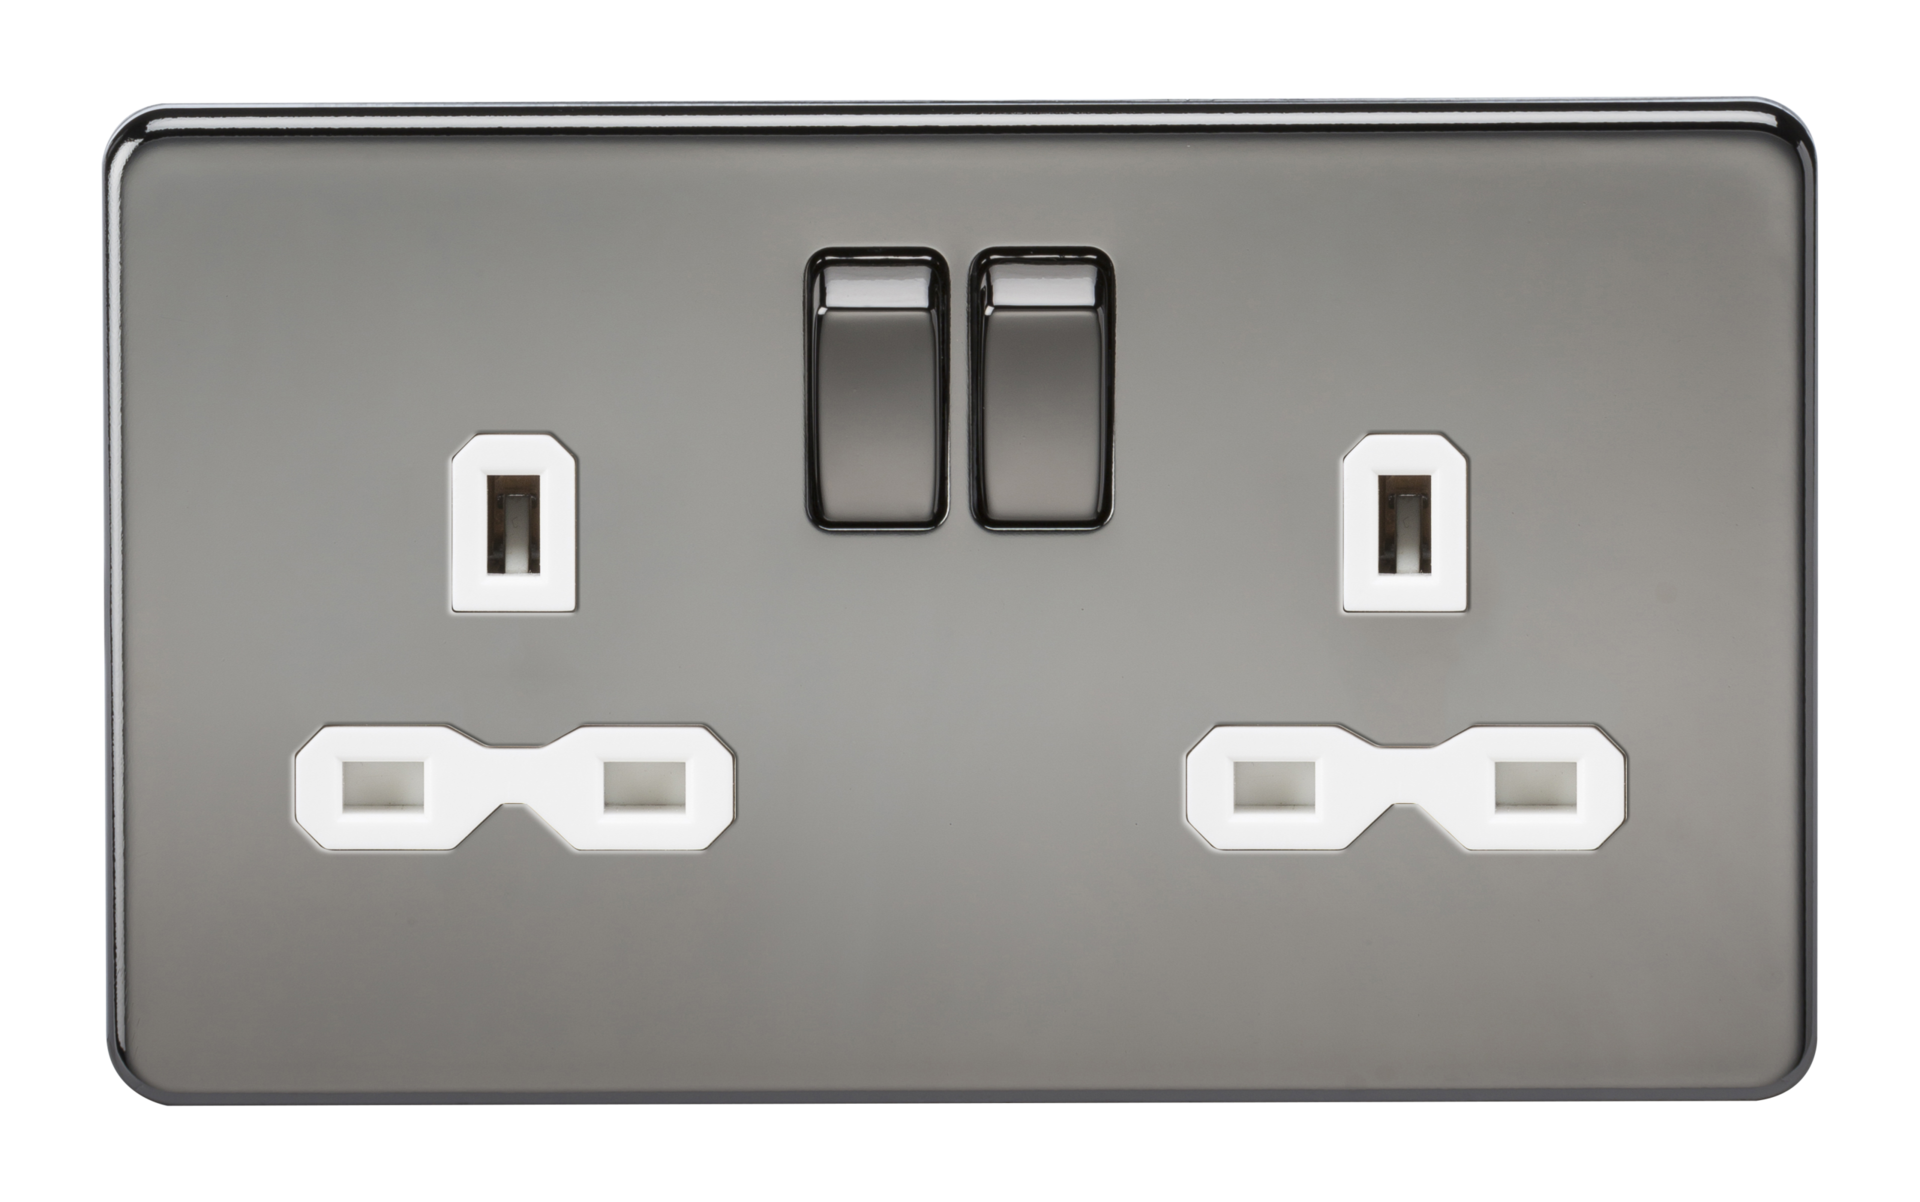 SCREWLESS 13A 2G DP SWITCHED SOCKET - BLACK NICKEL WITH WHITE INSERT